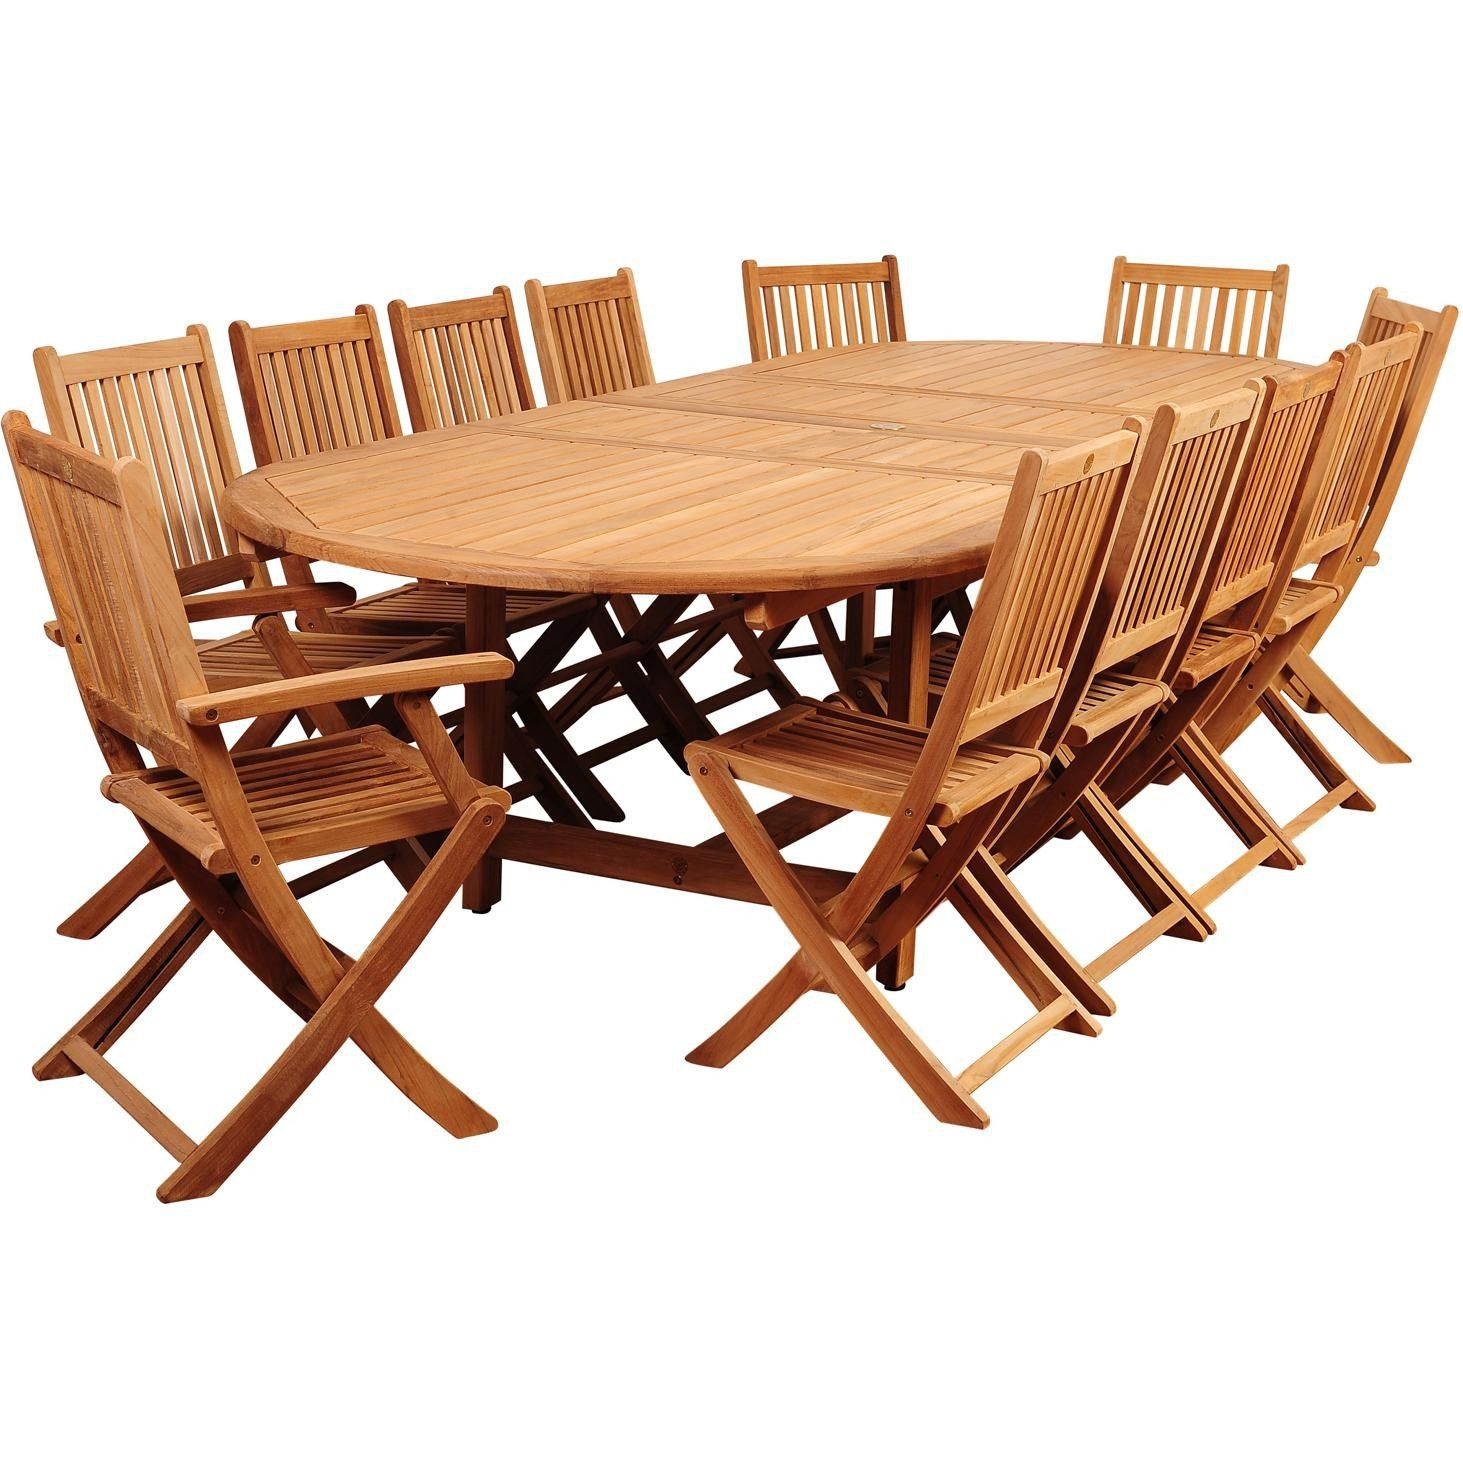 Teak chair replacement parts new teak chair replacement parts avondale 7 piece aluminum patio dining set with oval table by